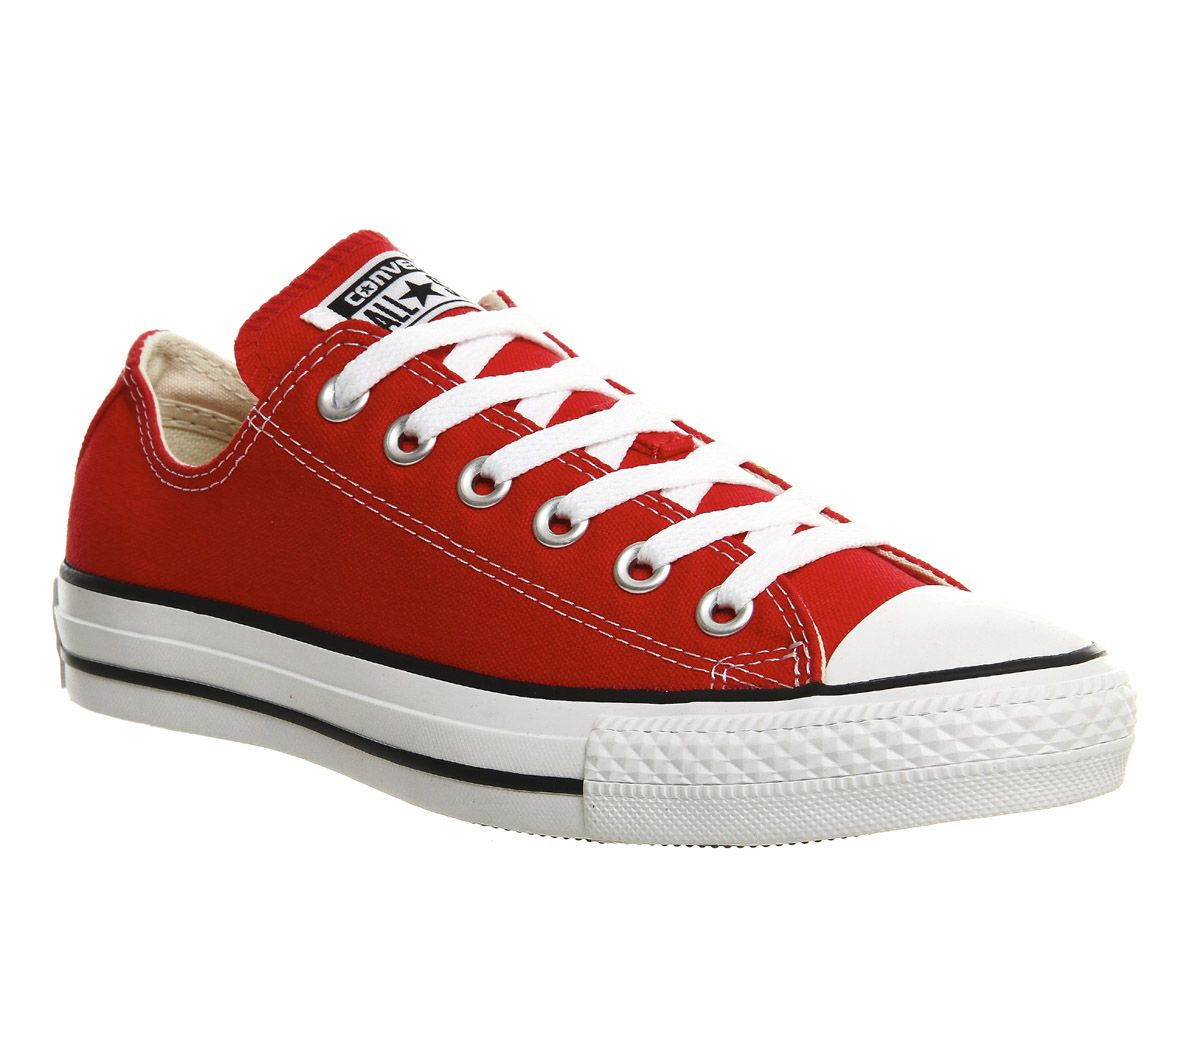 bad274813c34 Converse All Star Low Red Canvas - Unisex Sports